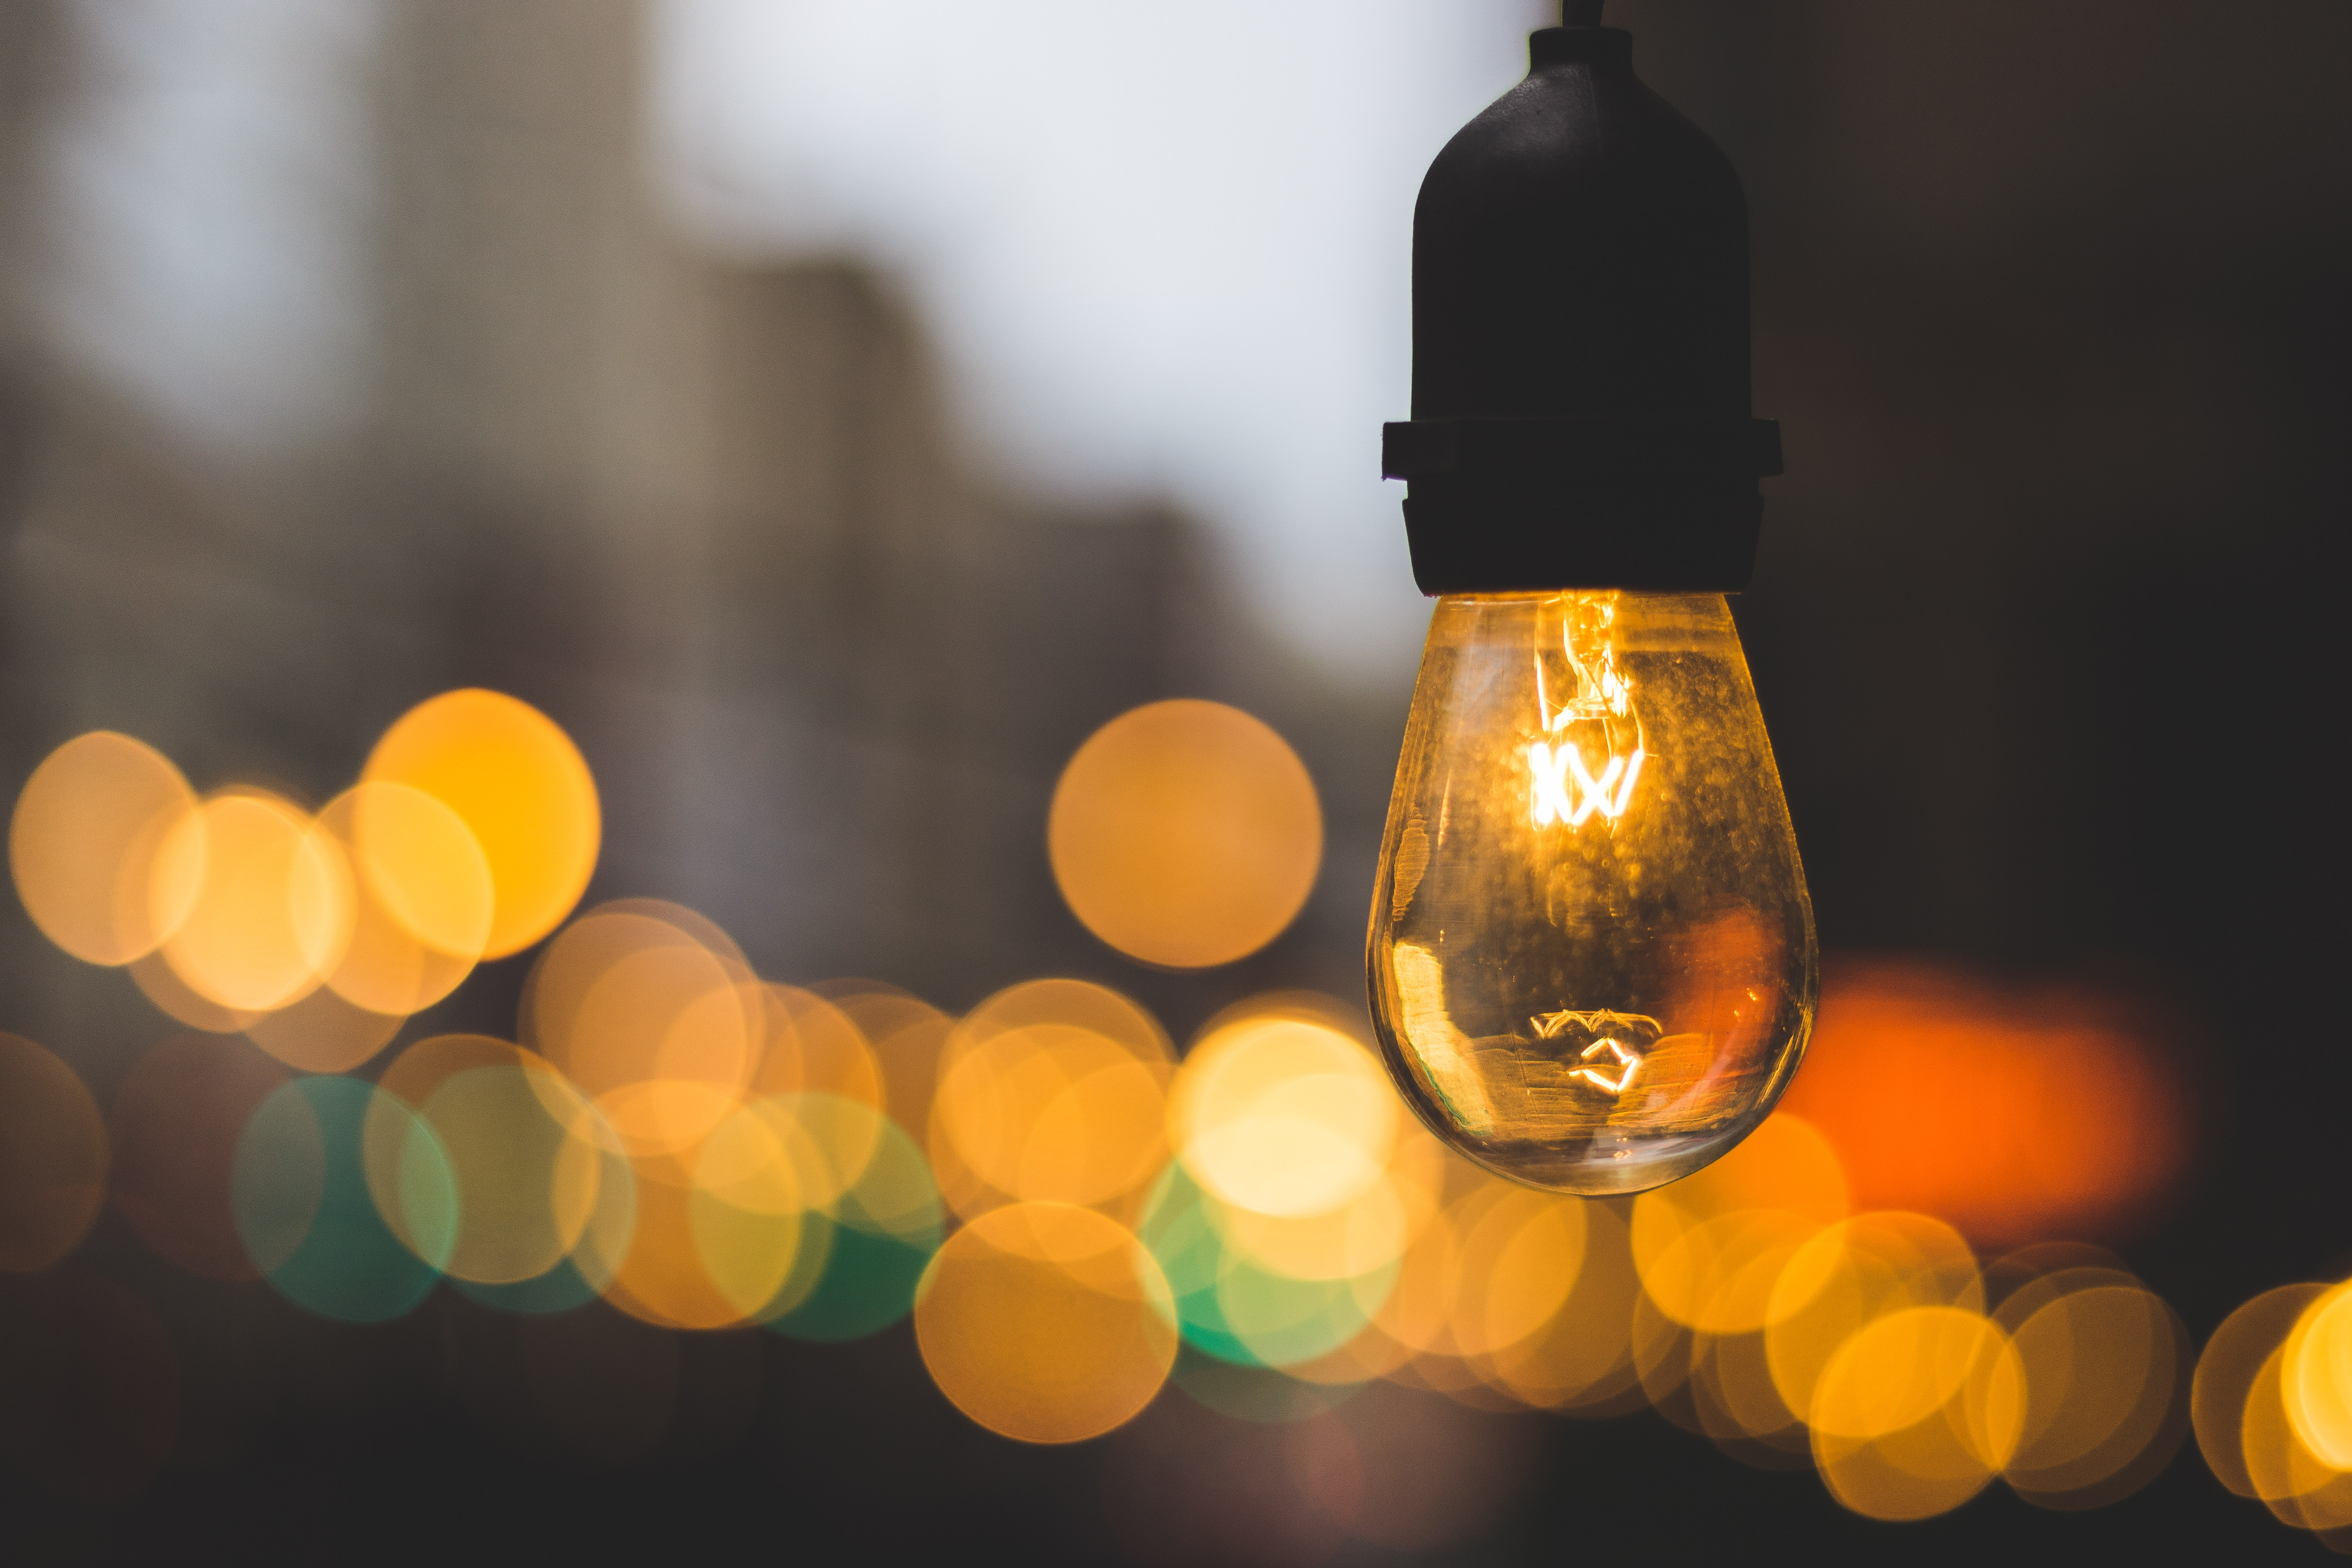 Light bulb on symbolising innovation and new ideas